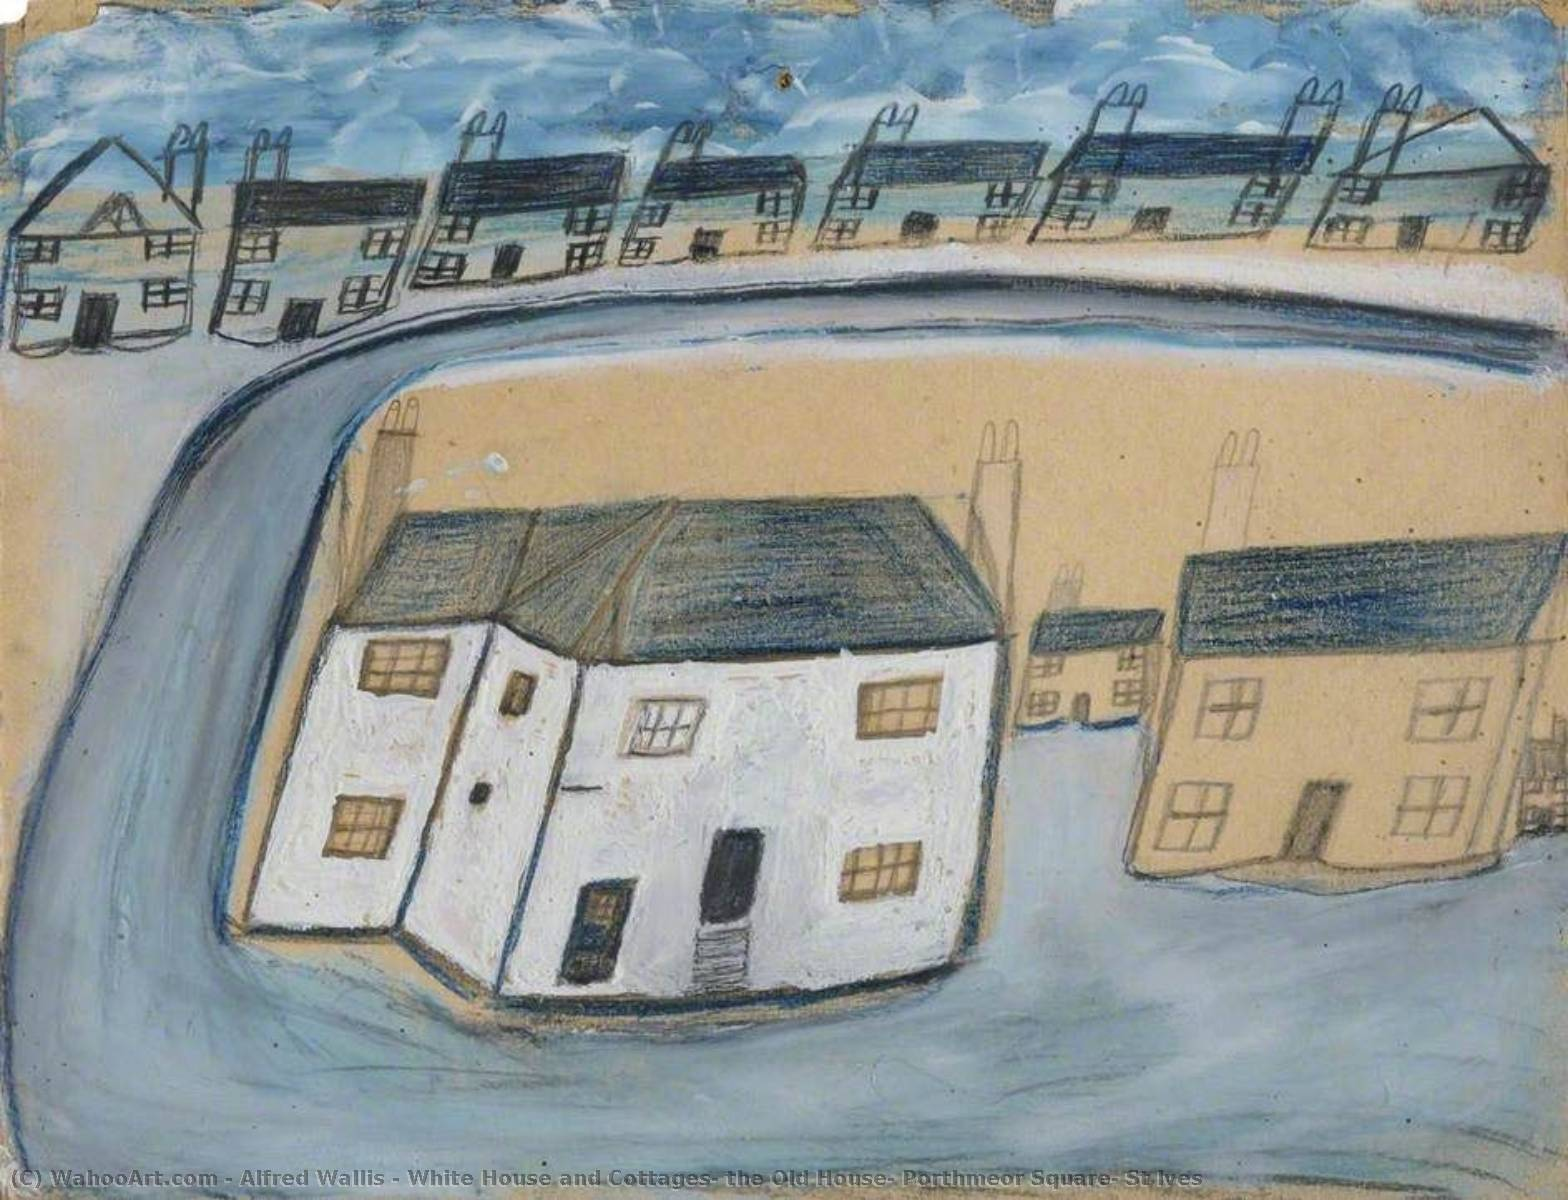 Order Art Reproduction : White House and Cottages, the Old House, Porthmeor Square, St Ives, 1932 by Alfred Wallis (1855-1942, United Kingdom) | WahooArt.com